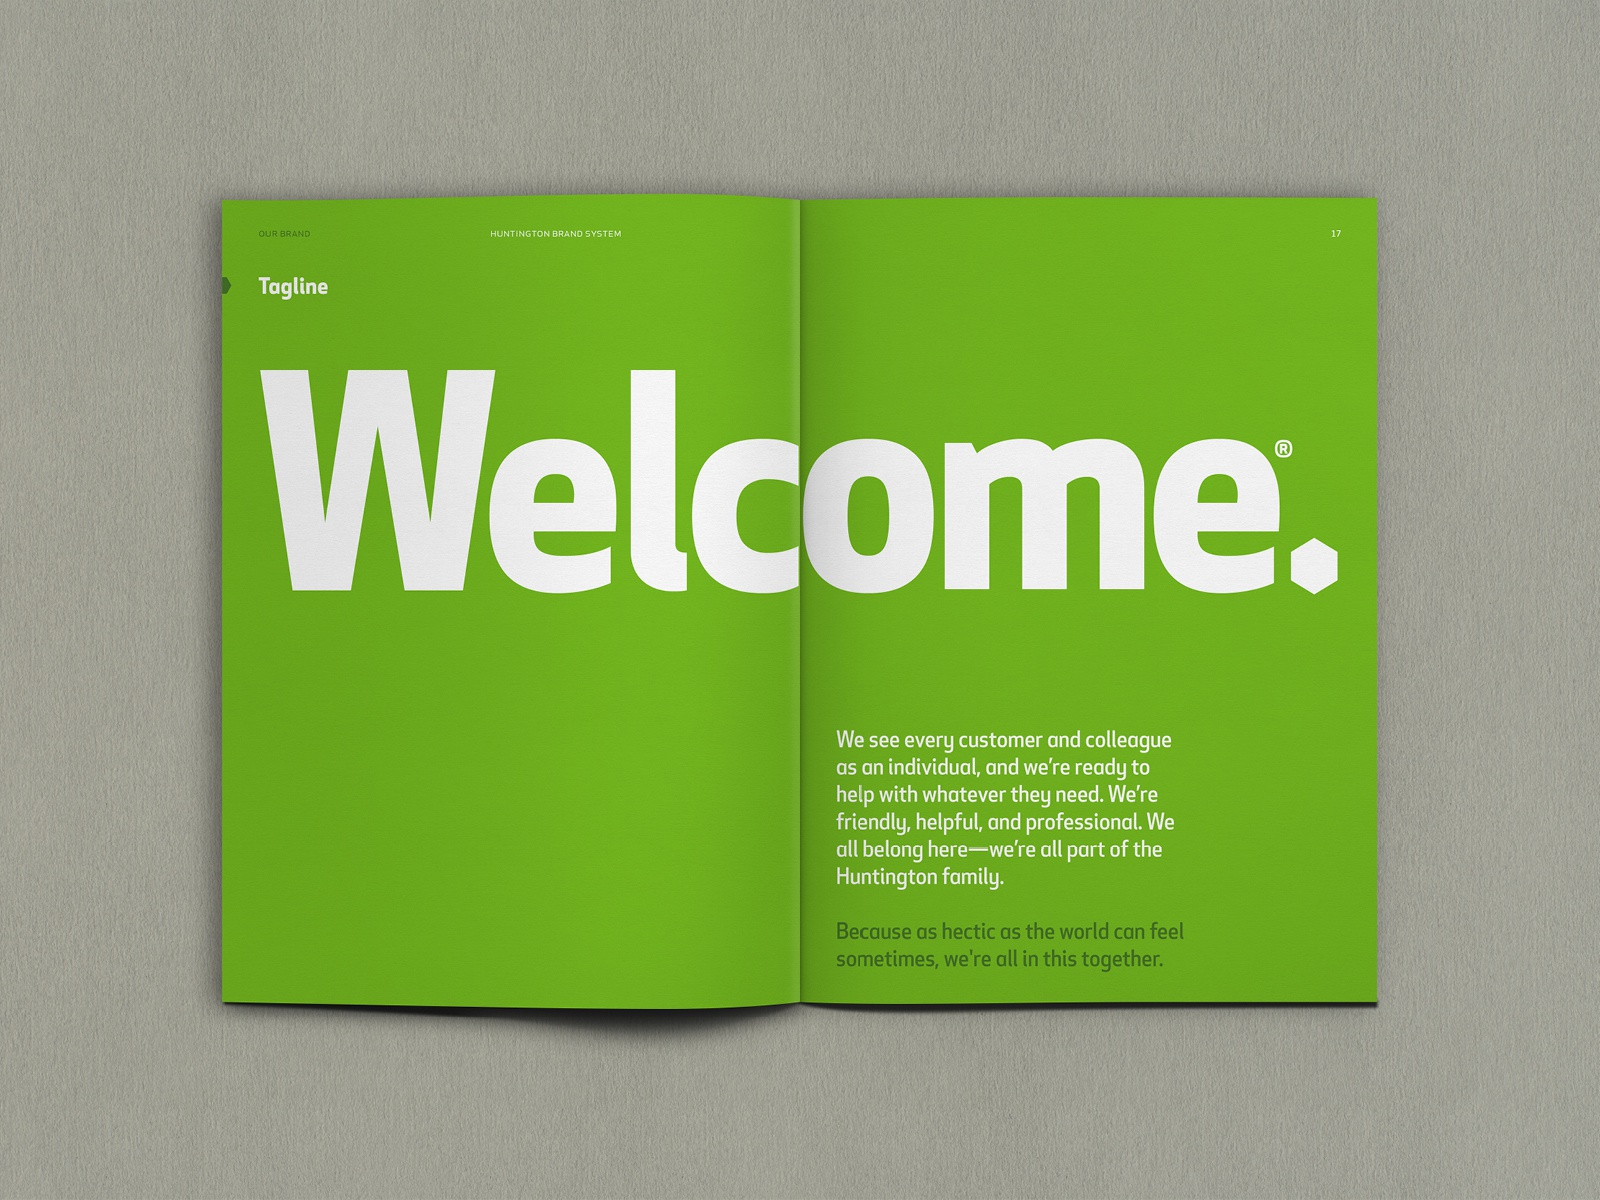 Huntington Bank Brand System